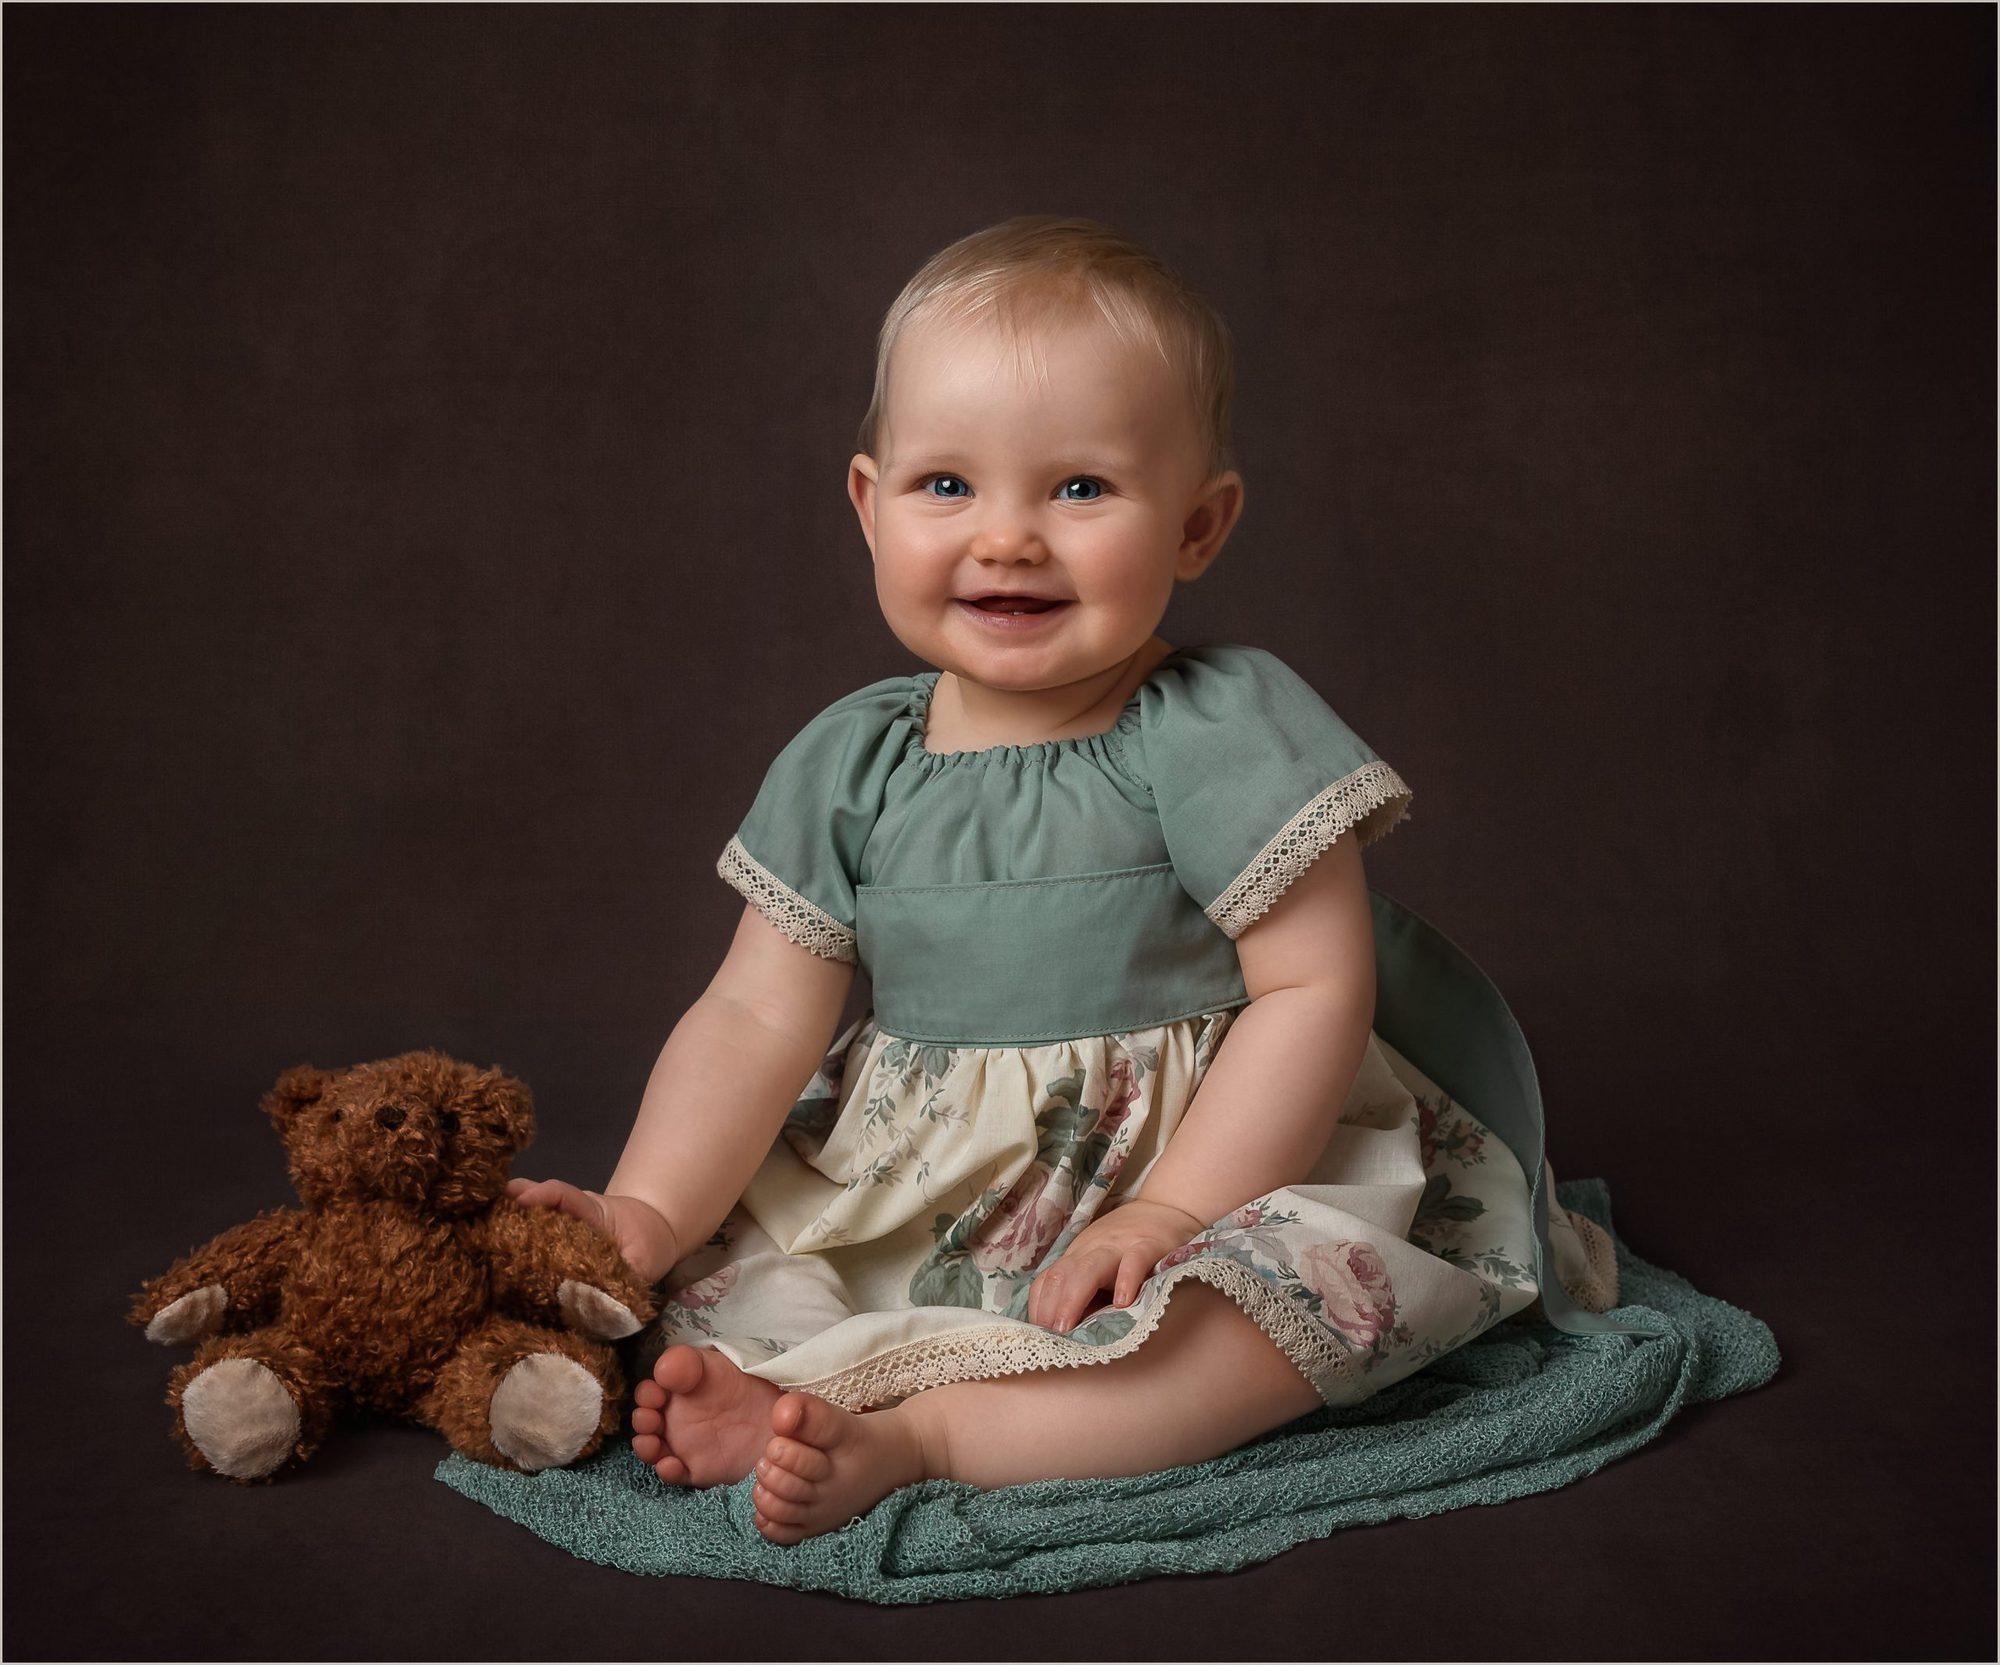 9 month old girl sitting in brighton studio for baby photoshoot with brown backdrop and teddy and green dress